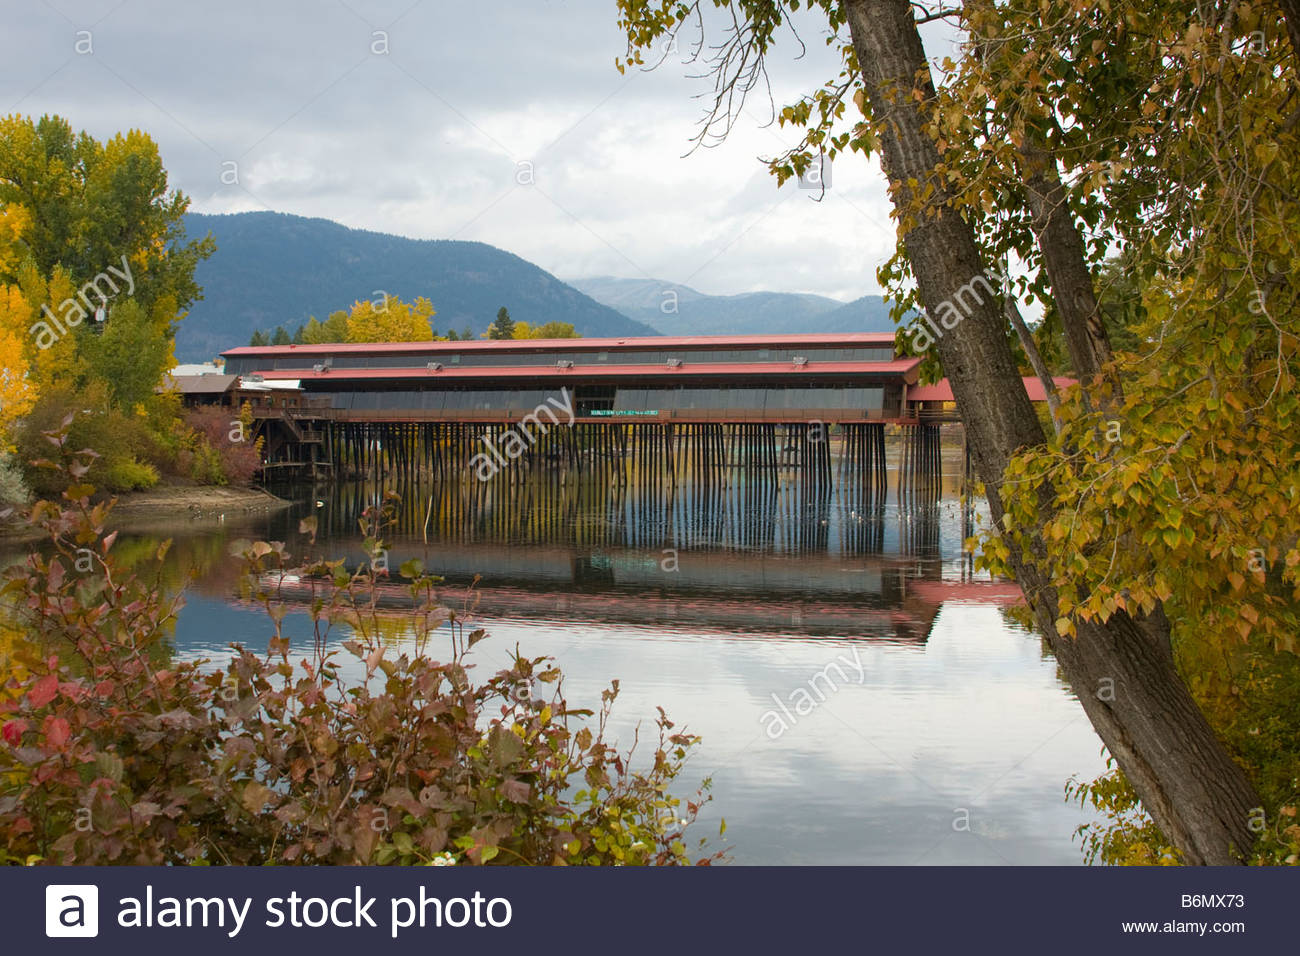 The landmark Cedar Street Bridge in Sandpoint Idaho reflecting in the water of Sand Creek - Stock Image